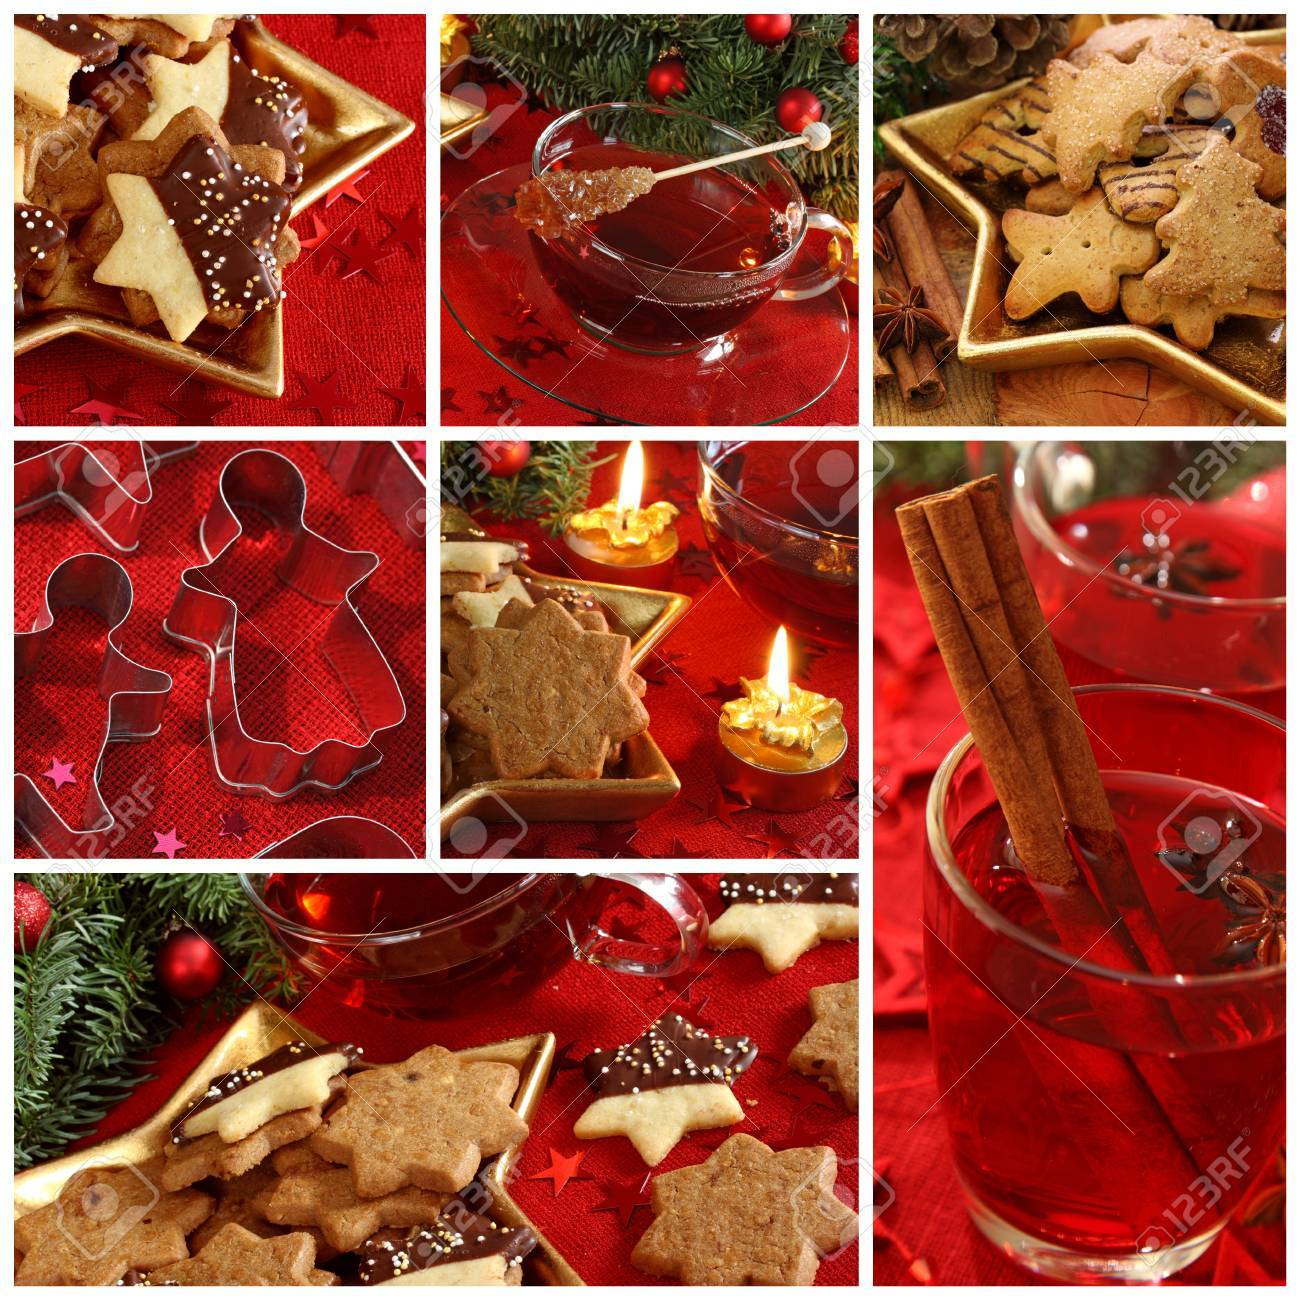 Christmas cakes and drink collage Standard-Bild - 9443506